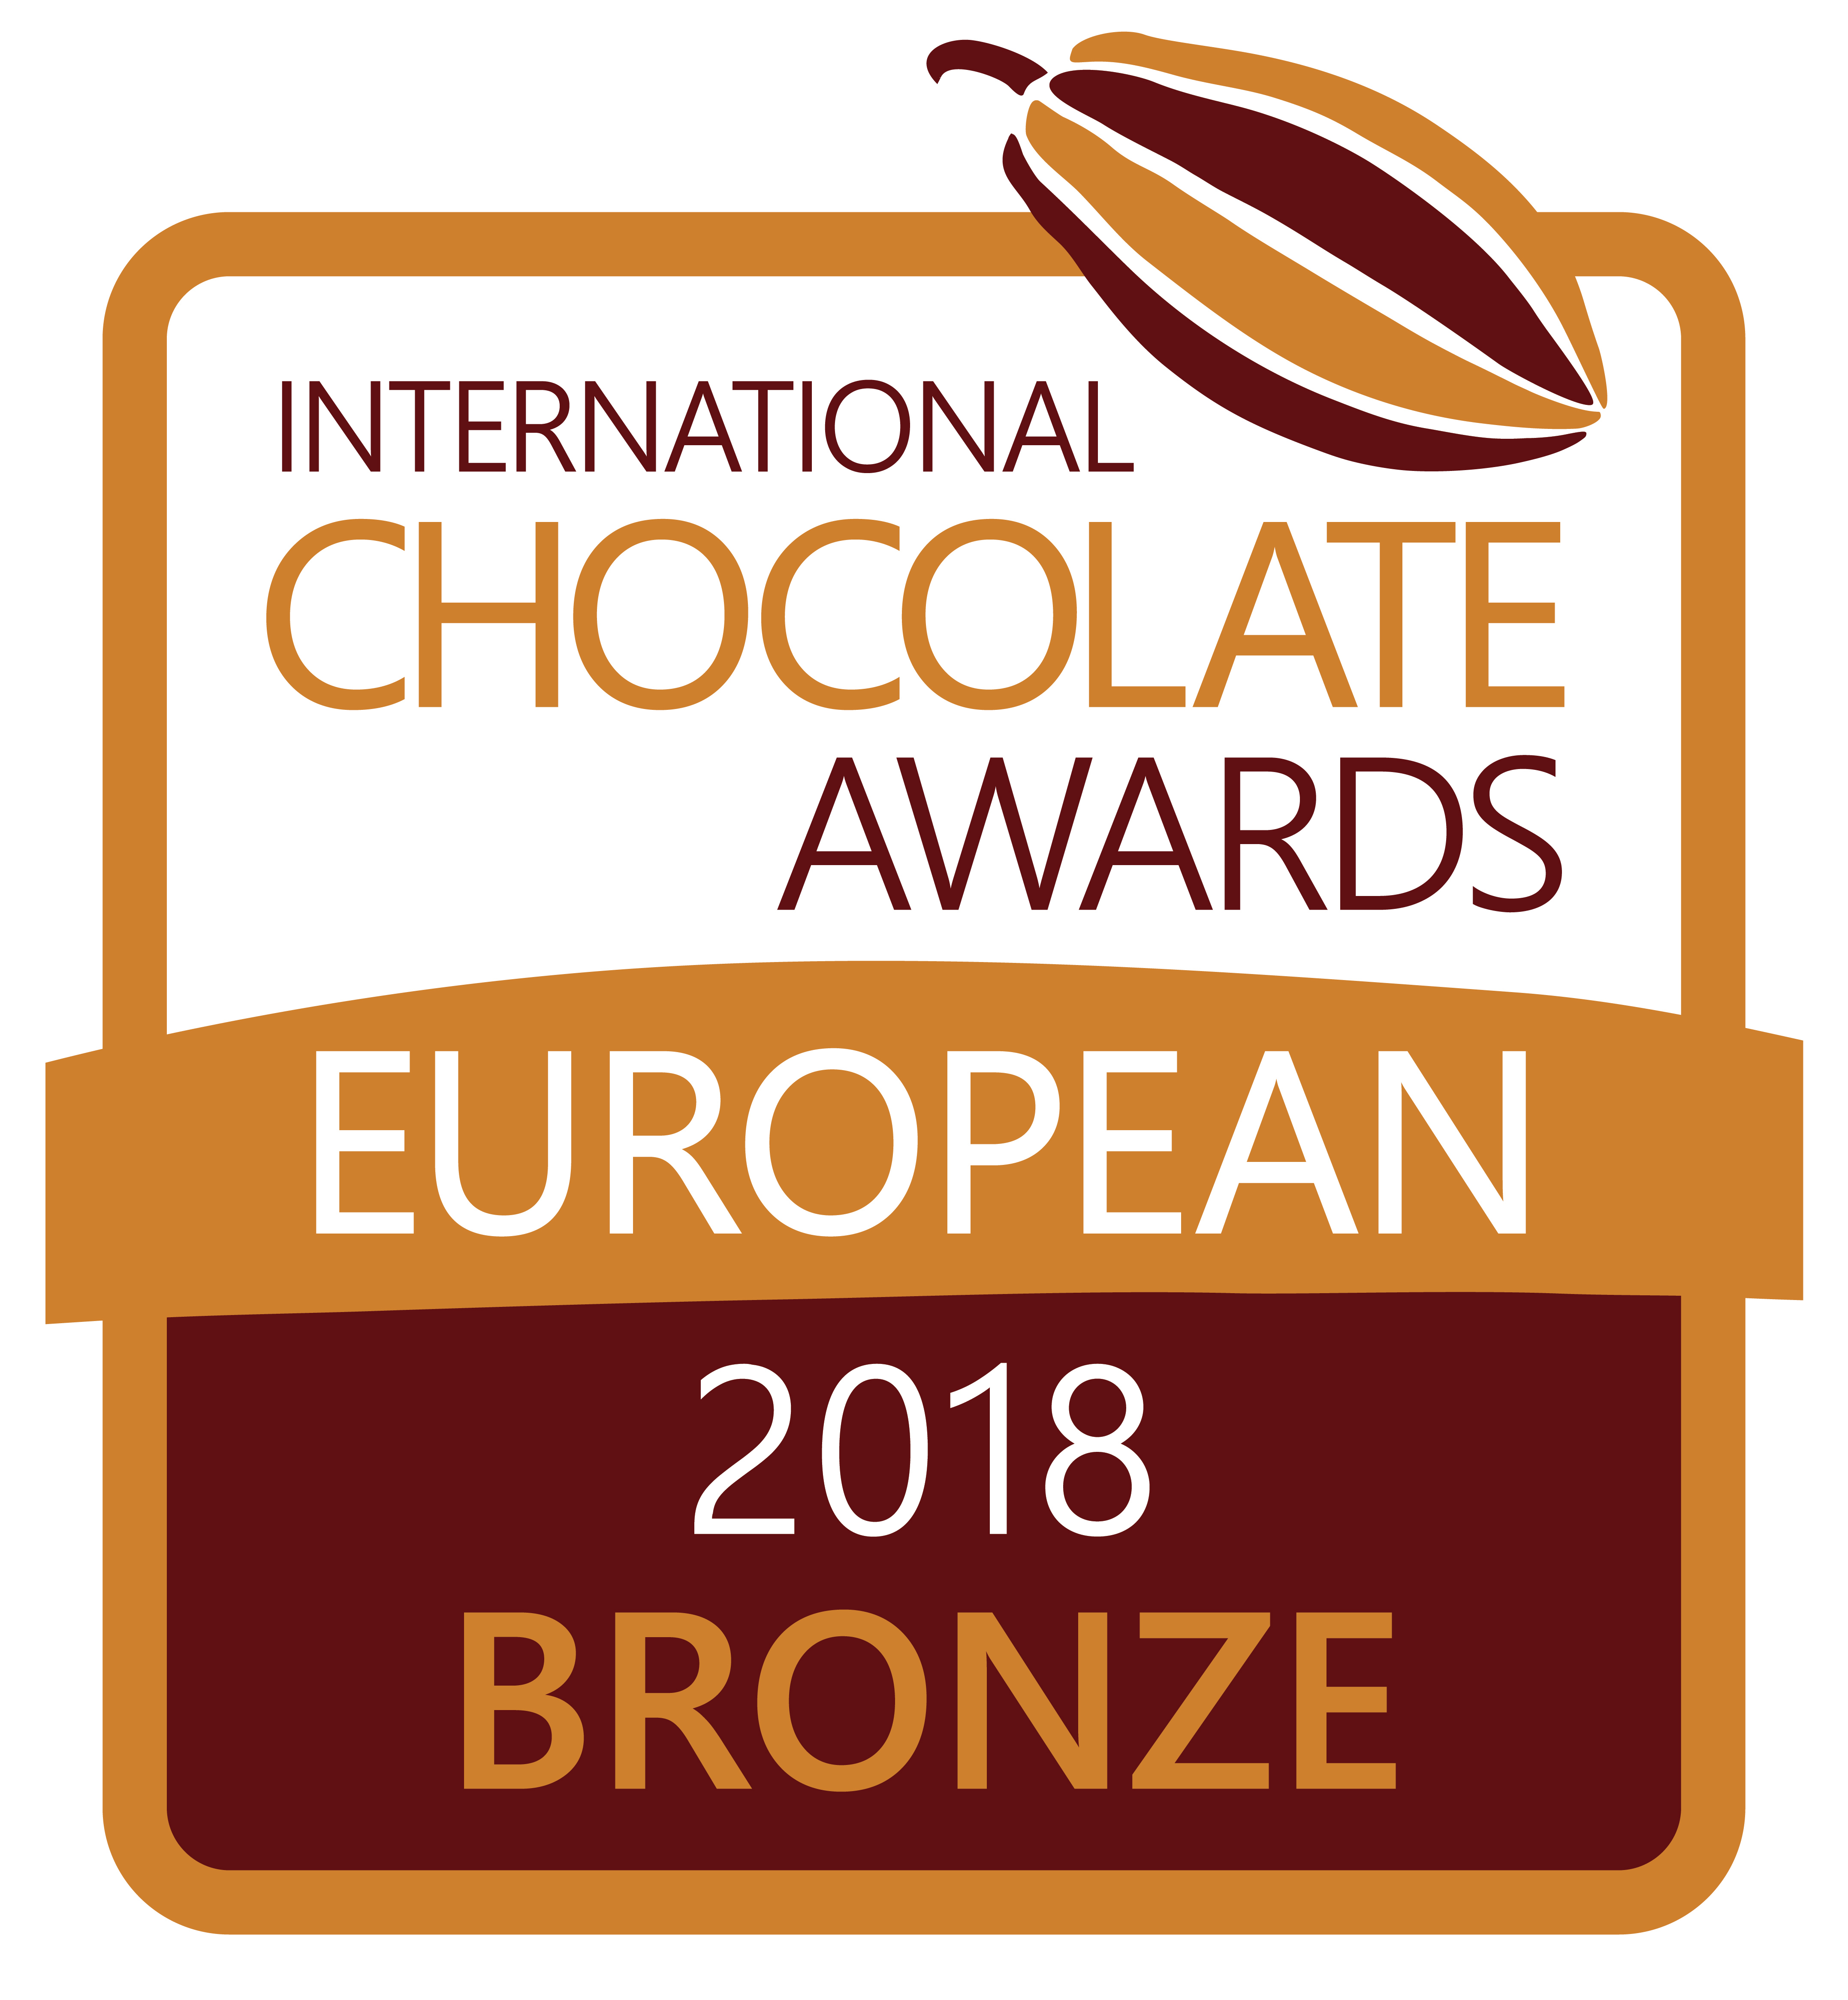 International Chocolate Award 2018